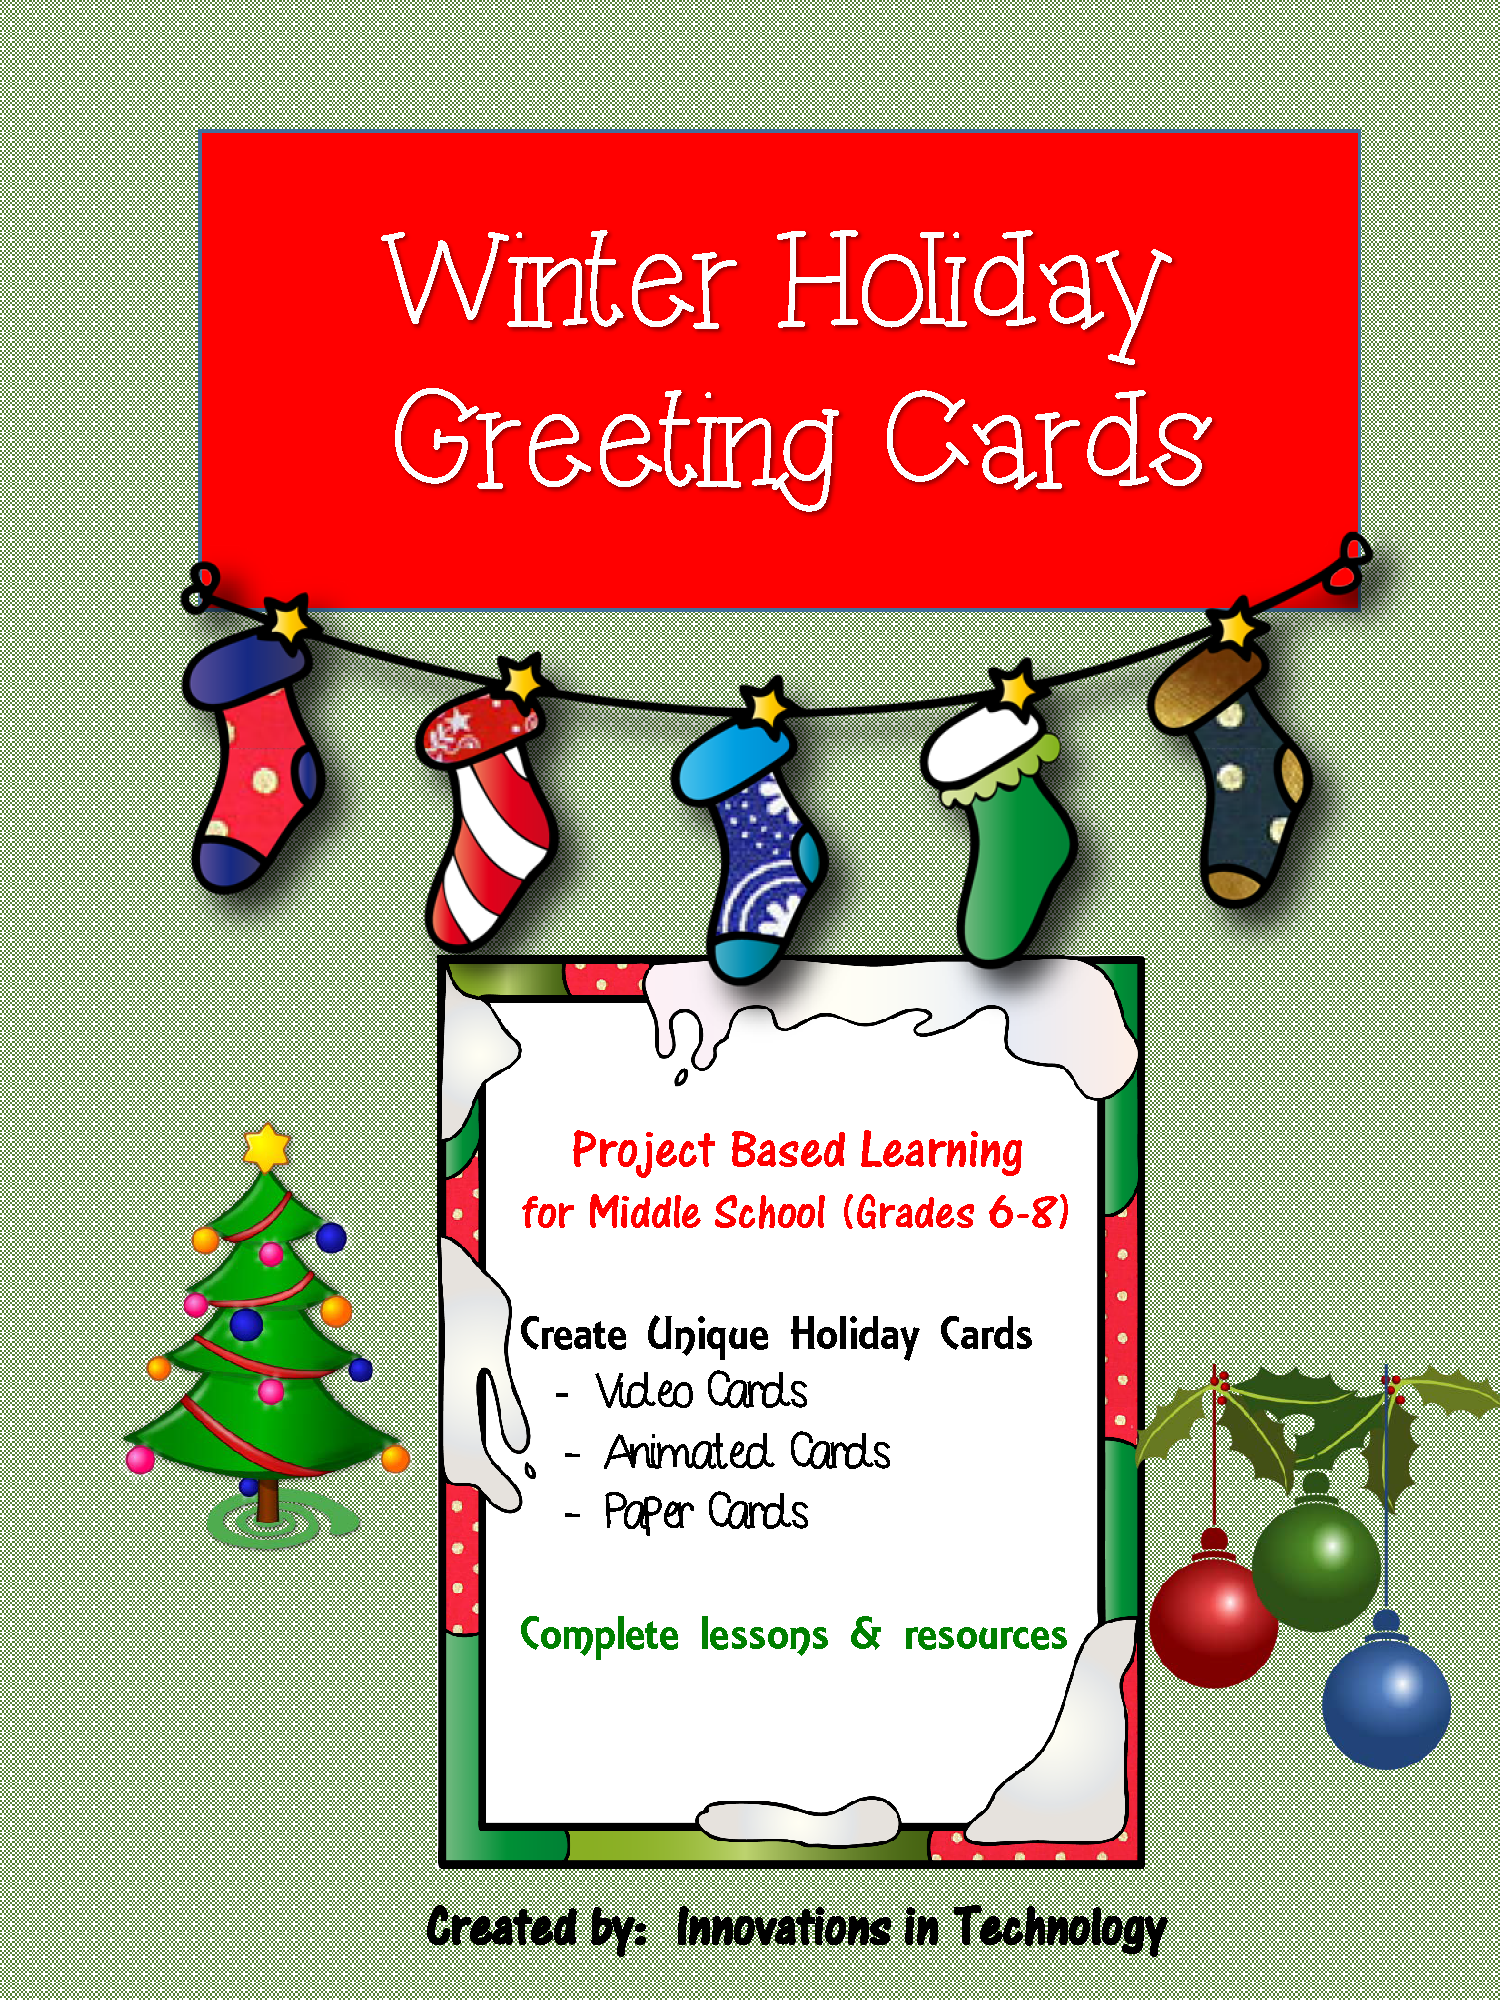 Winter Holiday Cards Video Ecard Paper Projects Winter